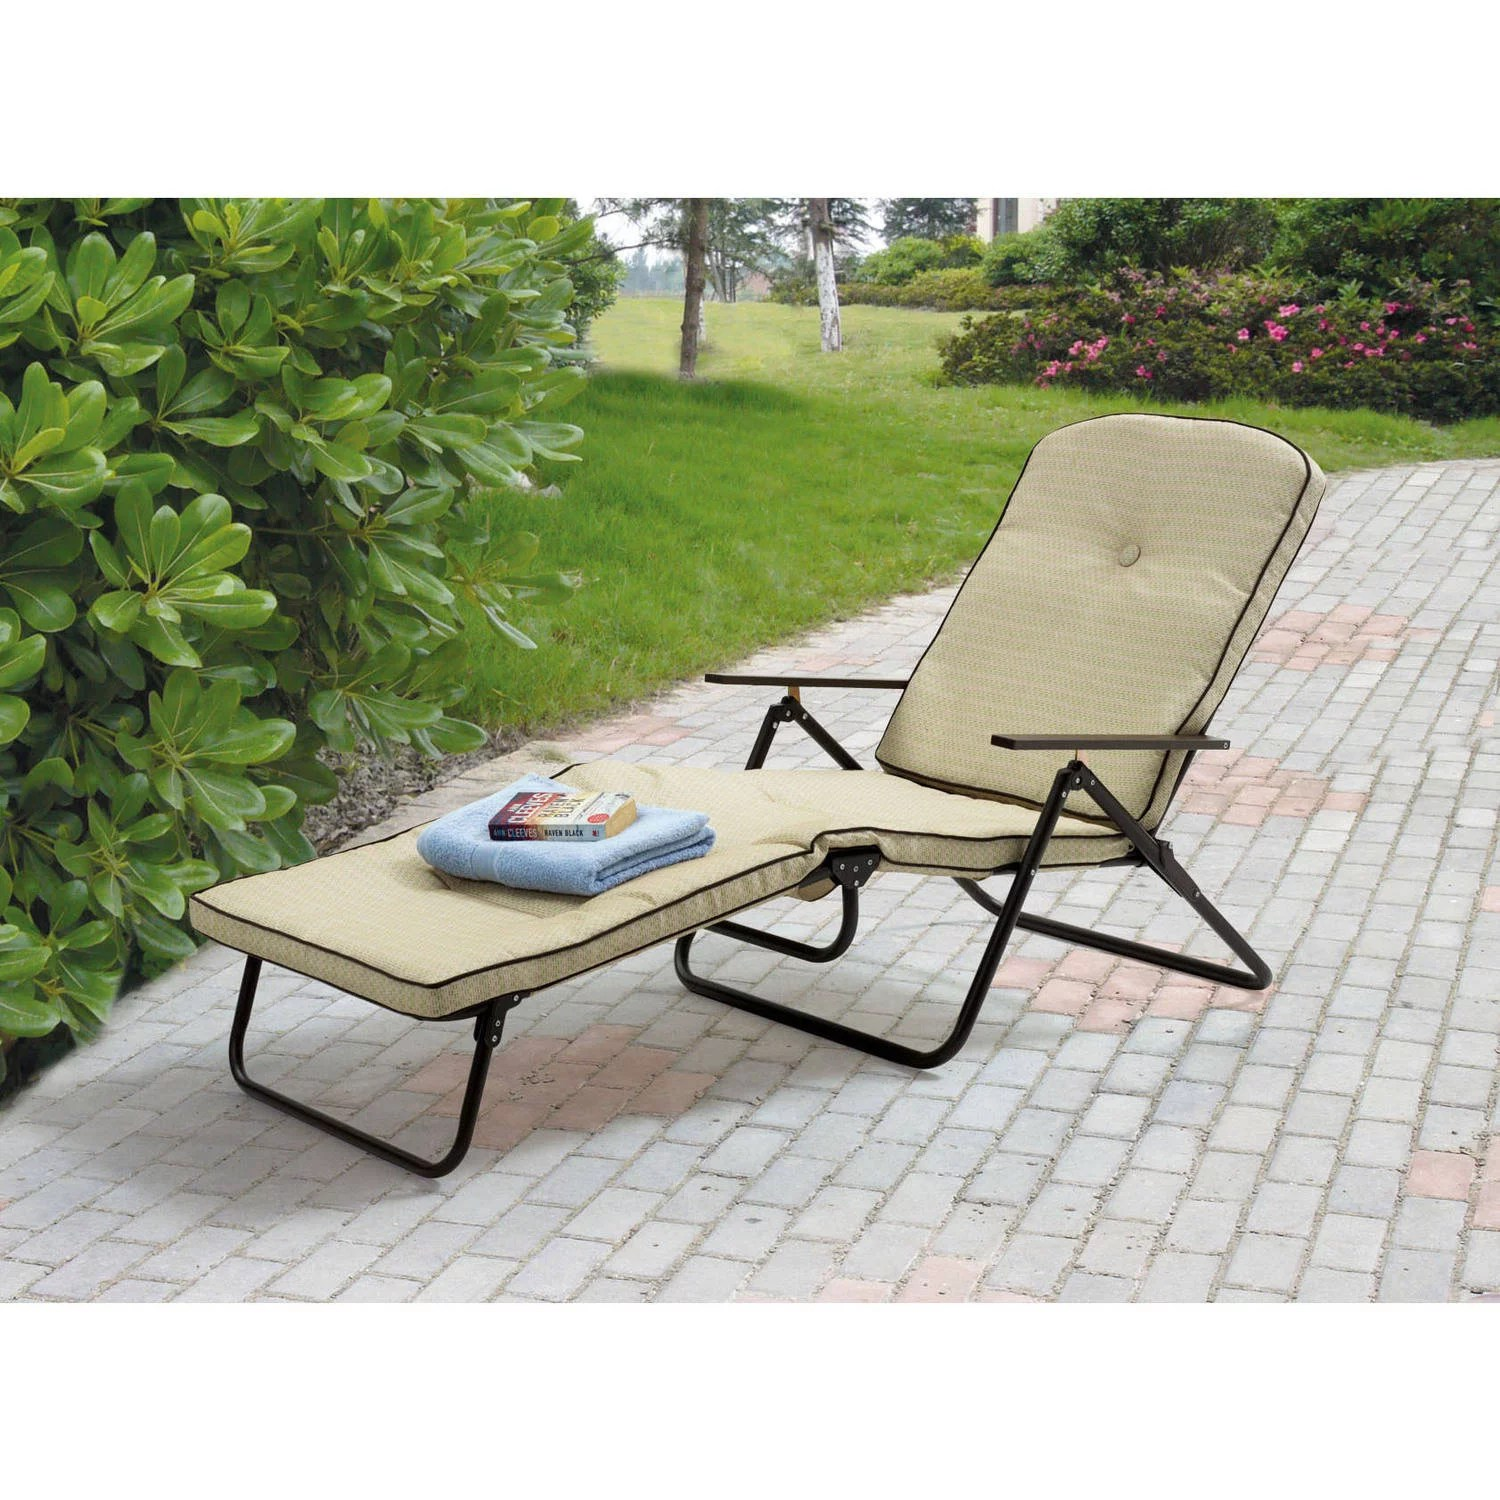 White Outdoor Lounge Chair Mainstays Sand Dune Outdoor Chaise Lounges Set Of 2